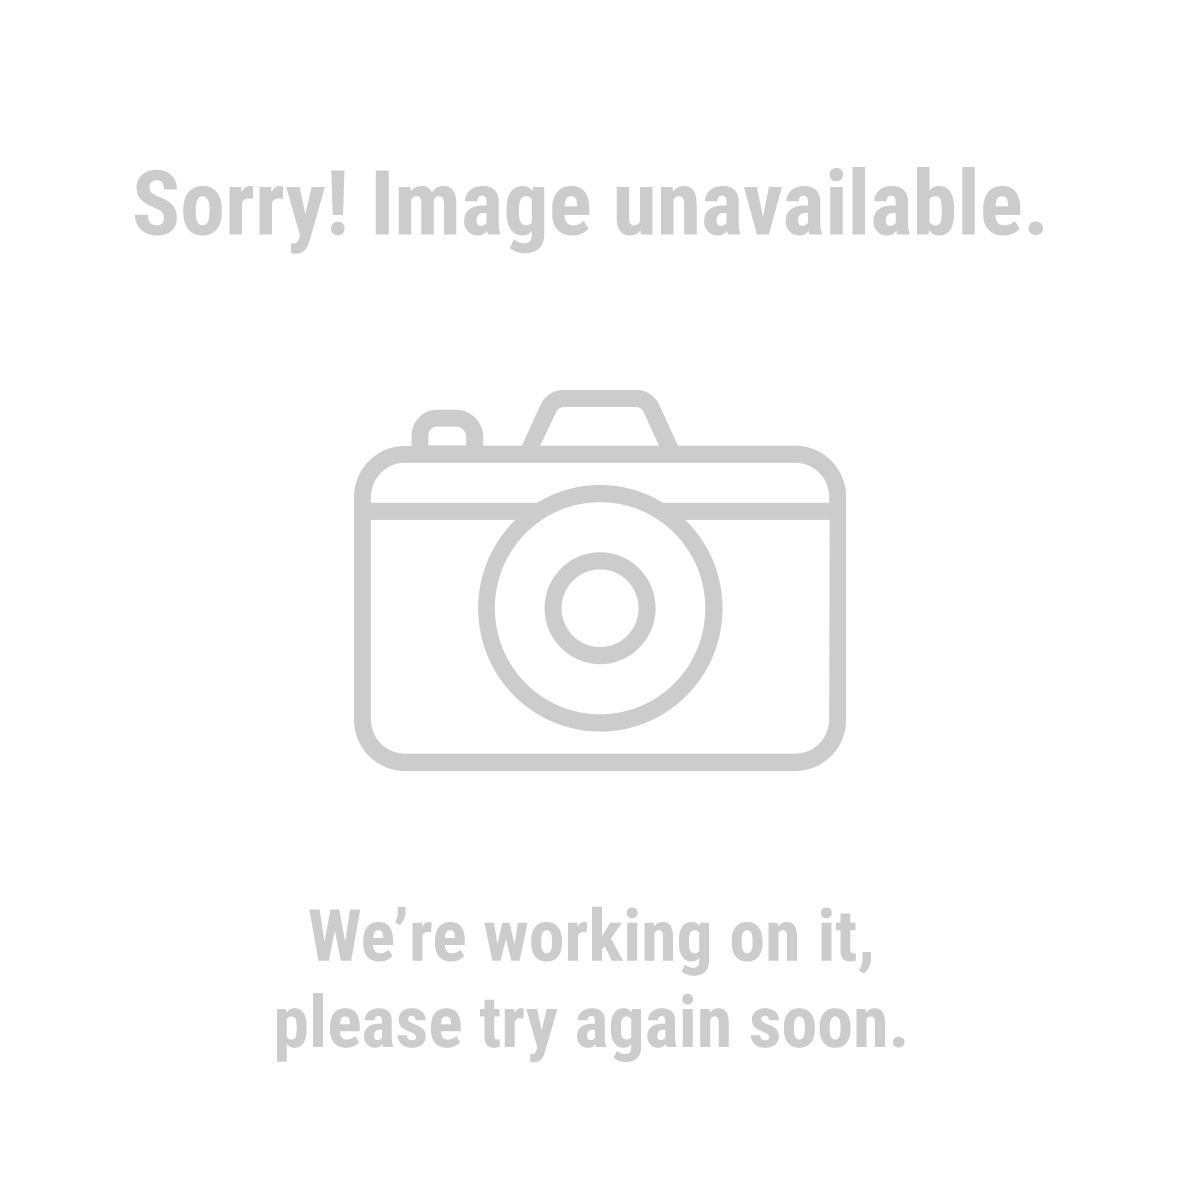 Pittsburgh Automotive 62116 3 ton Steel Heavy Duty Floor Jack with Rapid Pump®